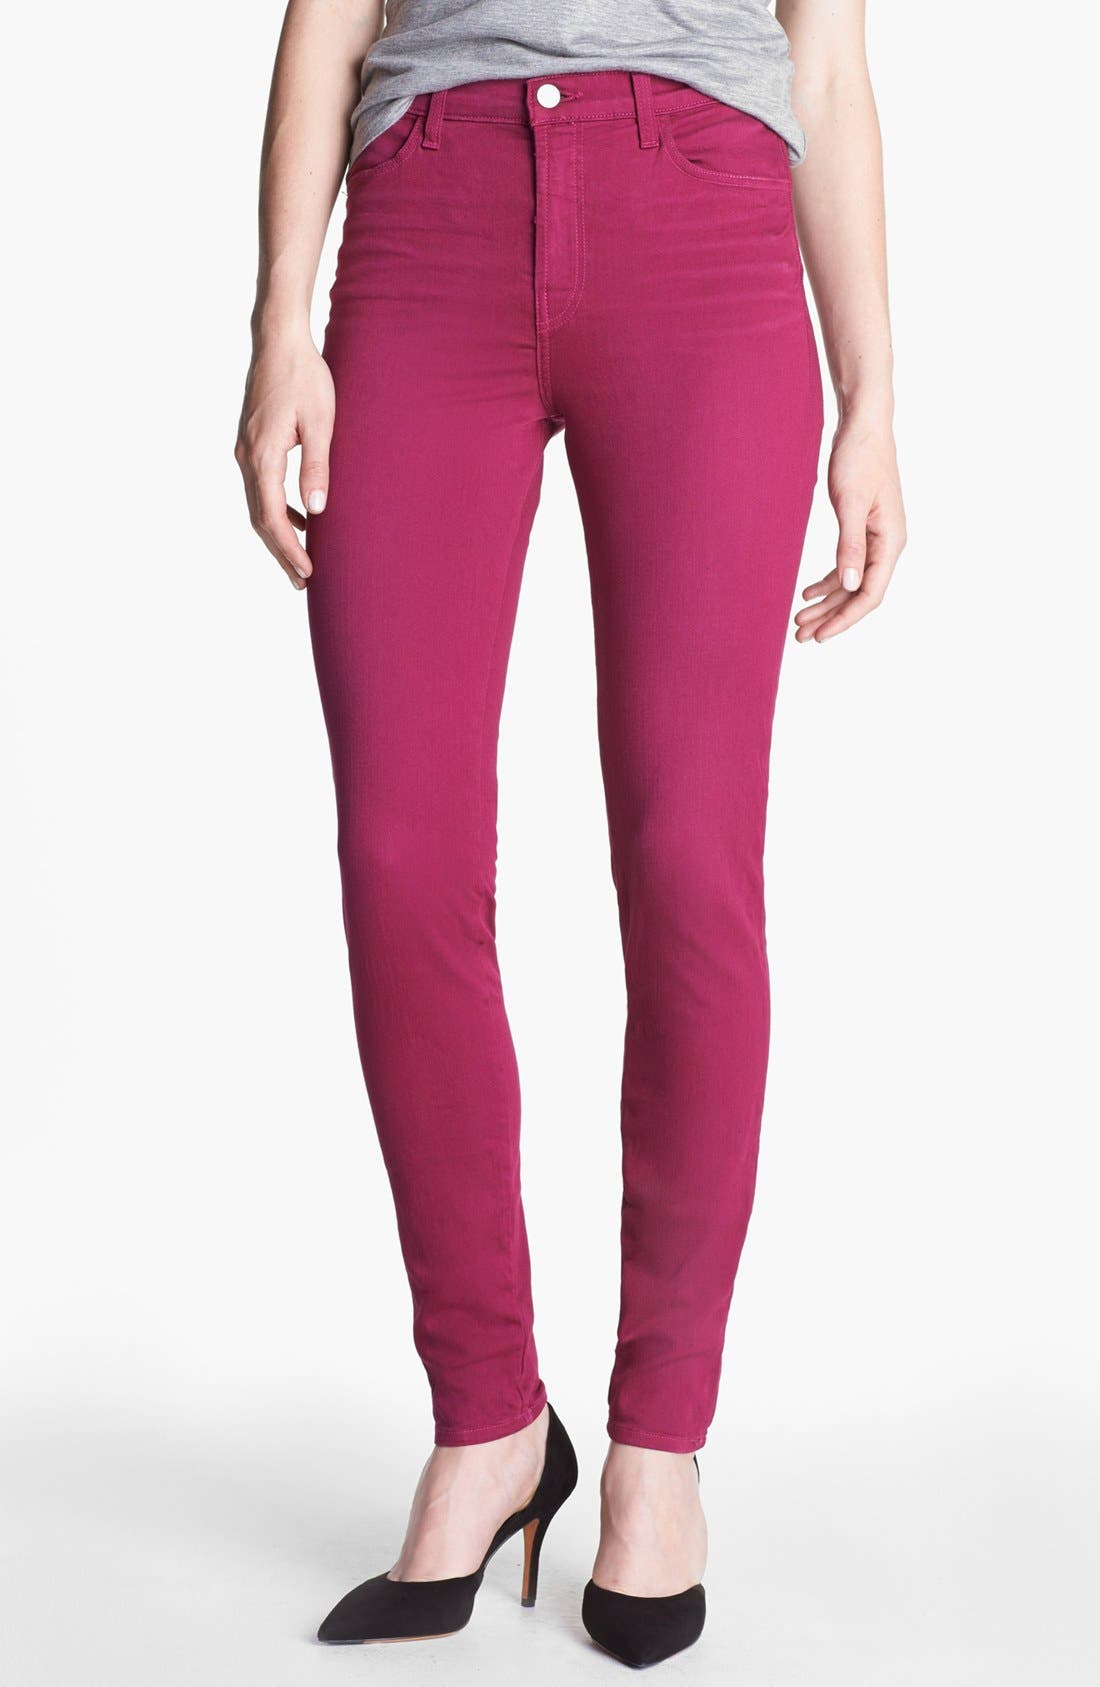 Main Image - J Brand 'Maria' High Waist Skinny Stretch Jeans (Washed Loganberry)